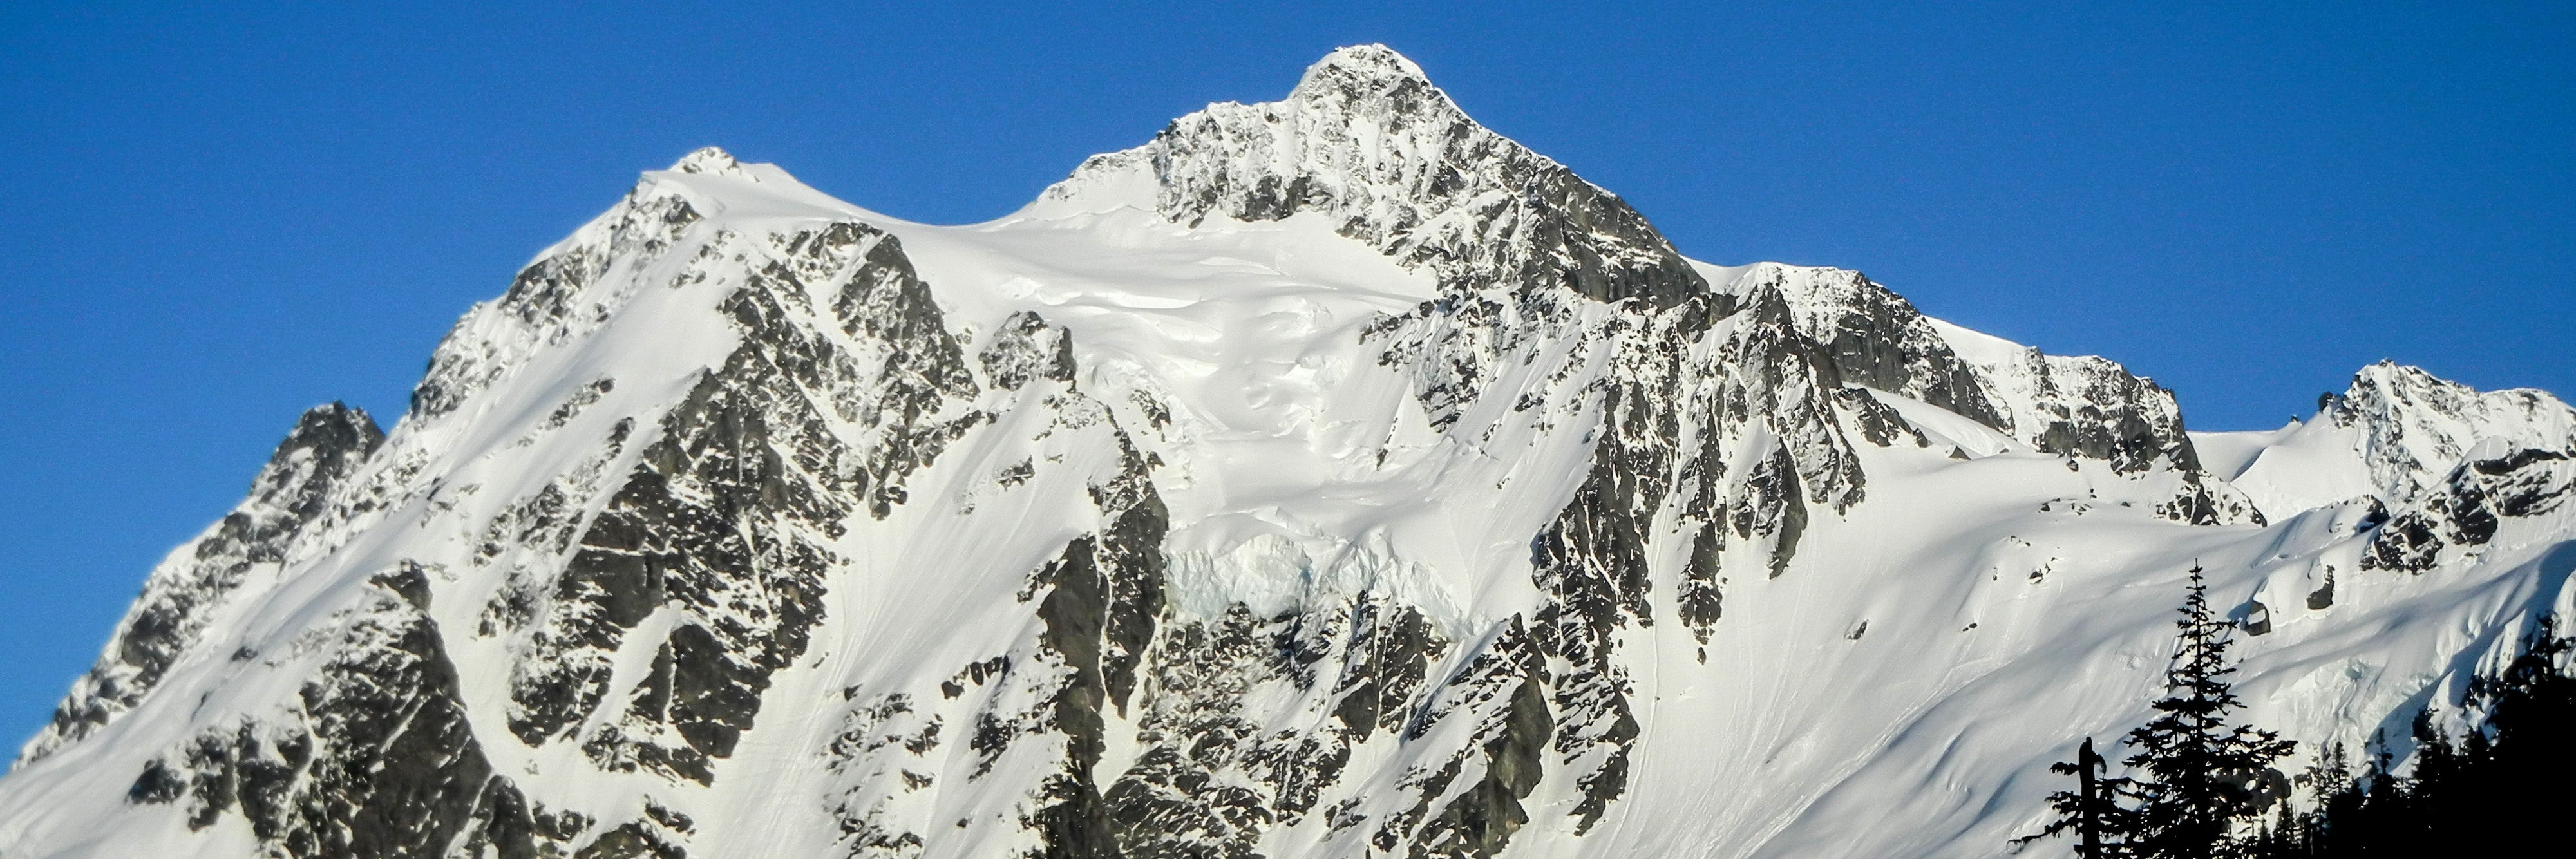 Mount Shuksan North Face